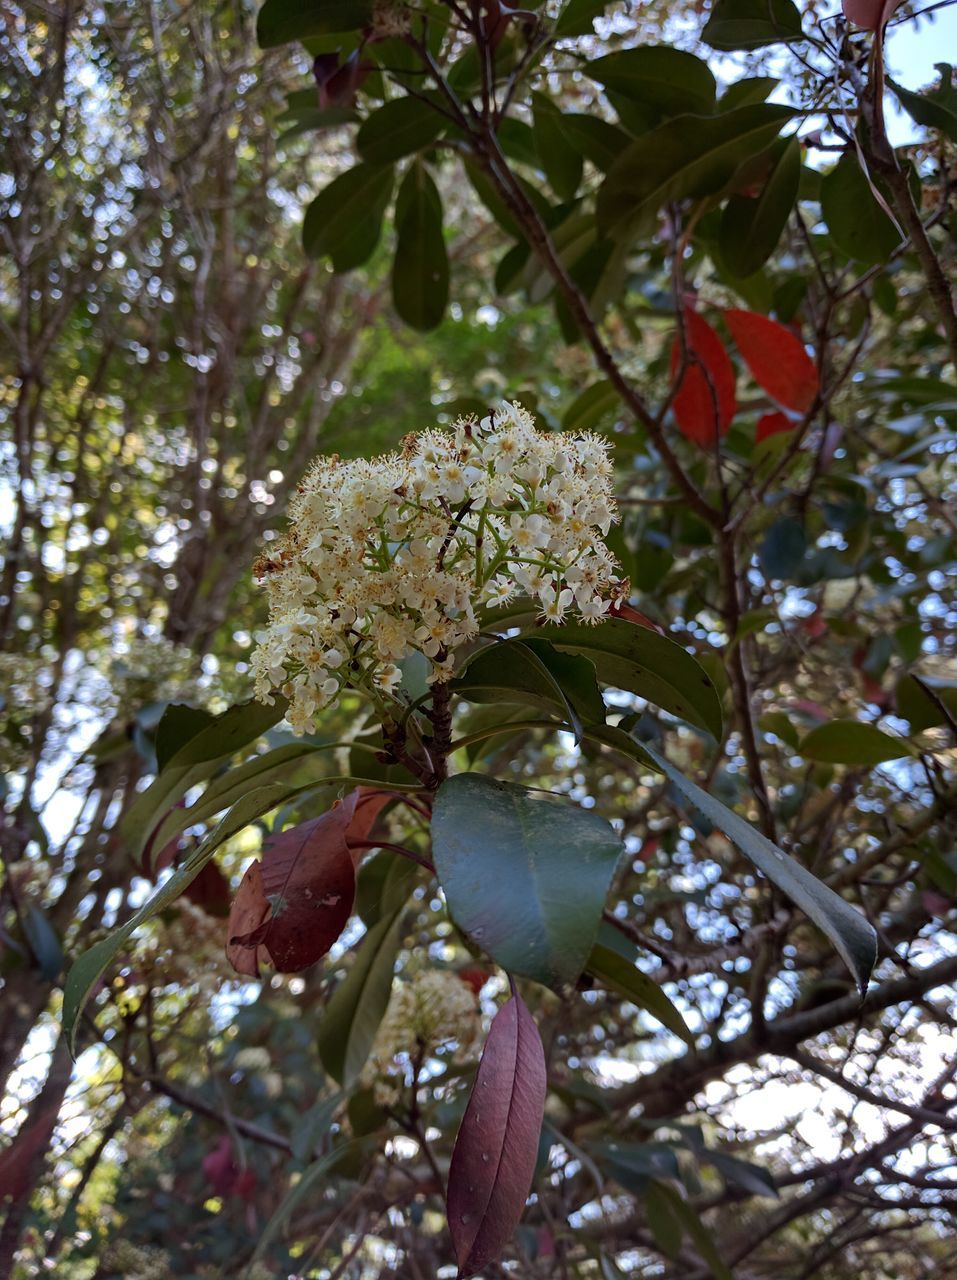 flower, tree, growth, branch, nature, beauty in nature, fragility, low angle view, petal, freshness, no people, blossom, day, springtime, blooming, flower head, outdoors, leaf, plant, close-up